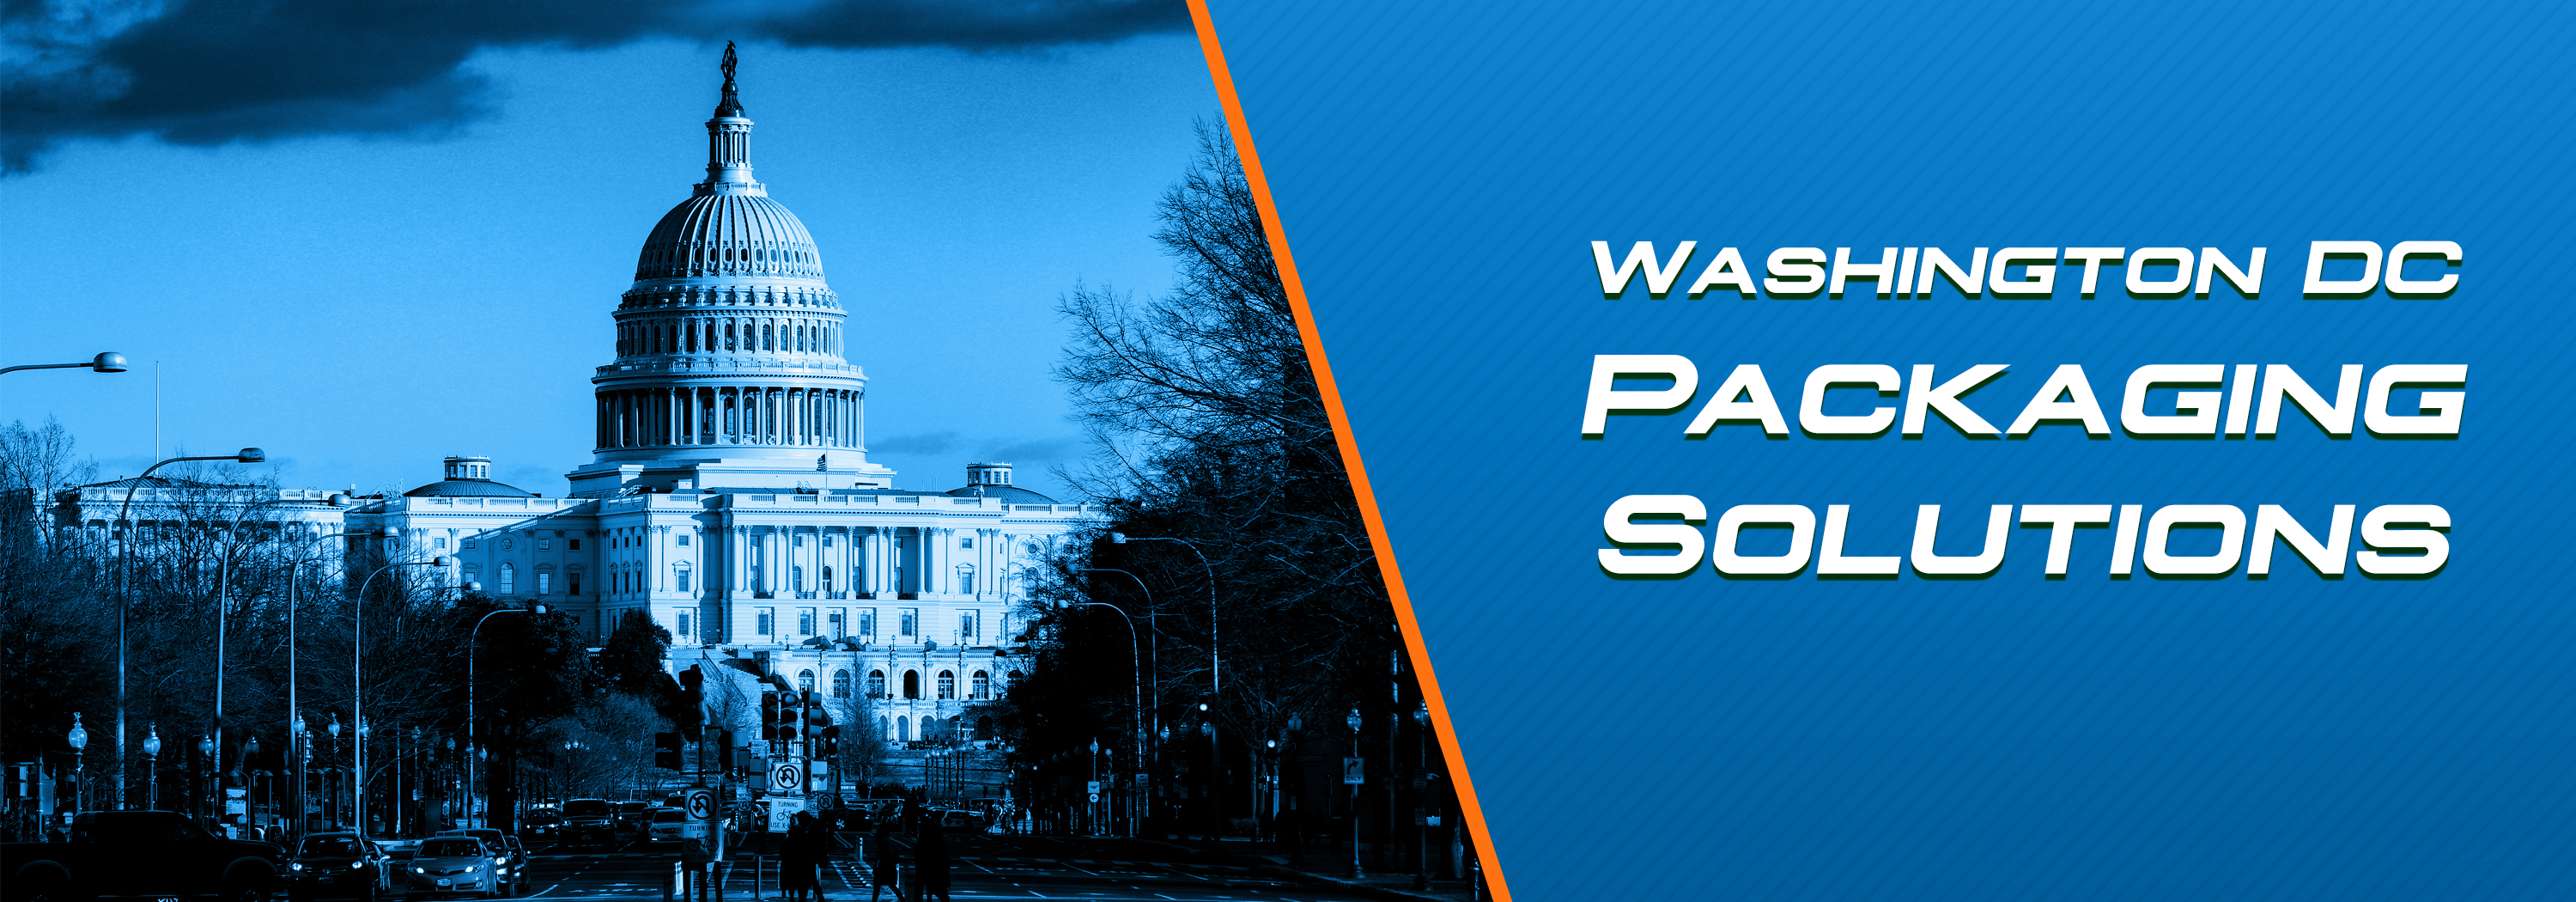 Washington Dc Packaging Solutions